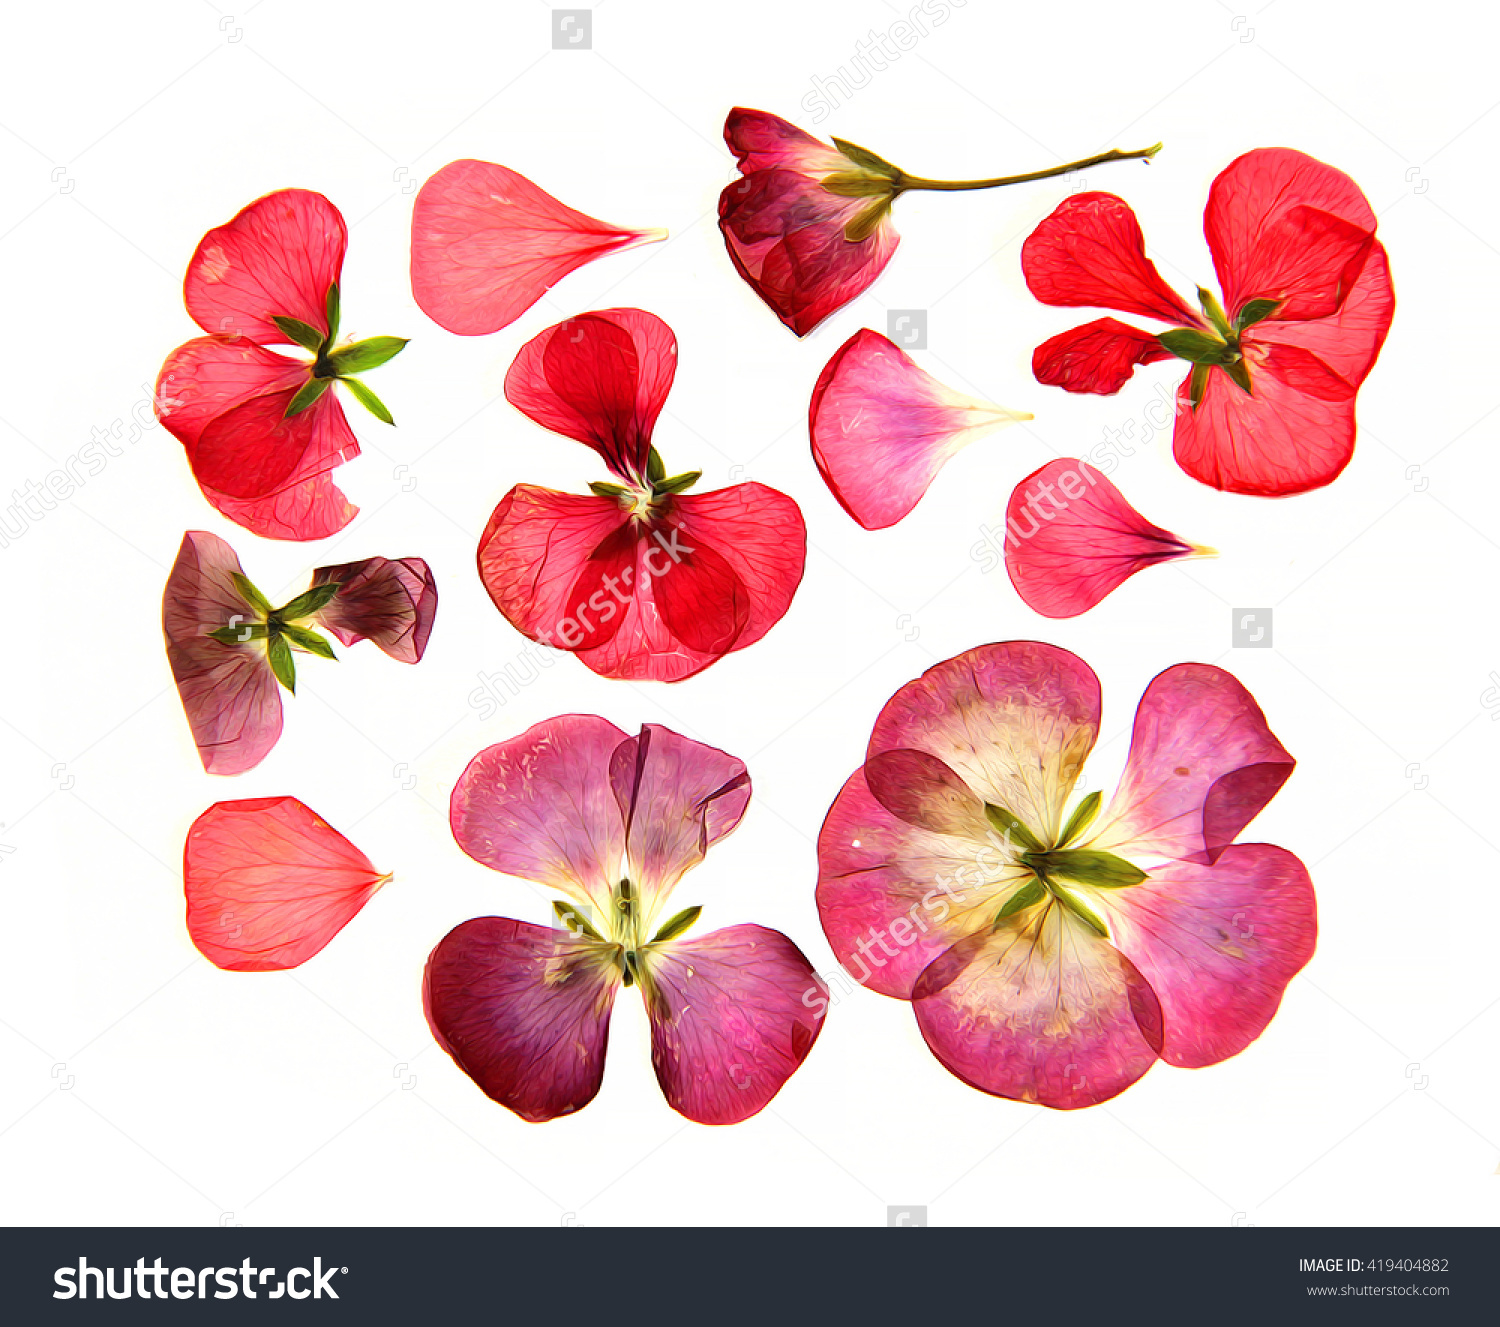 Oil Draw Red Pink Brown Pressed Stock Illustration 419404882.